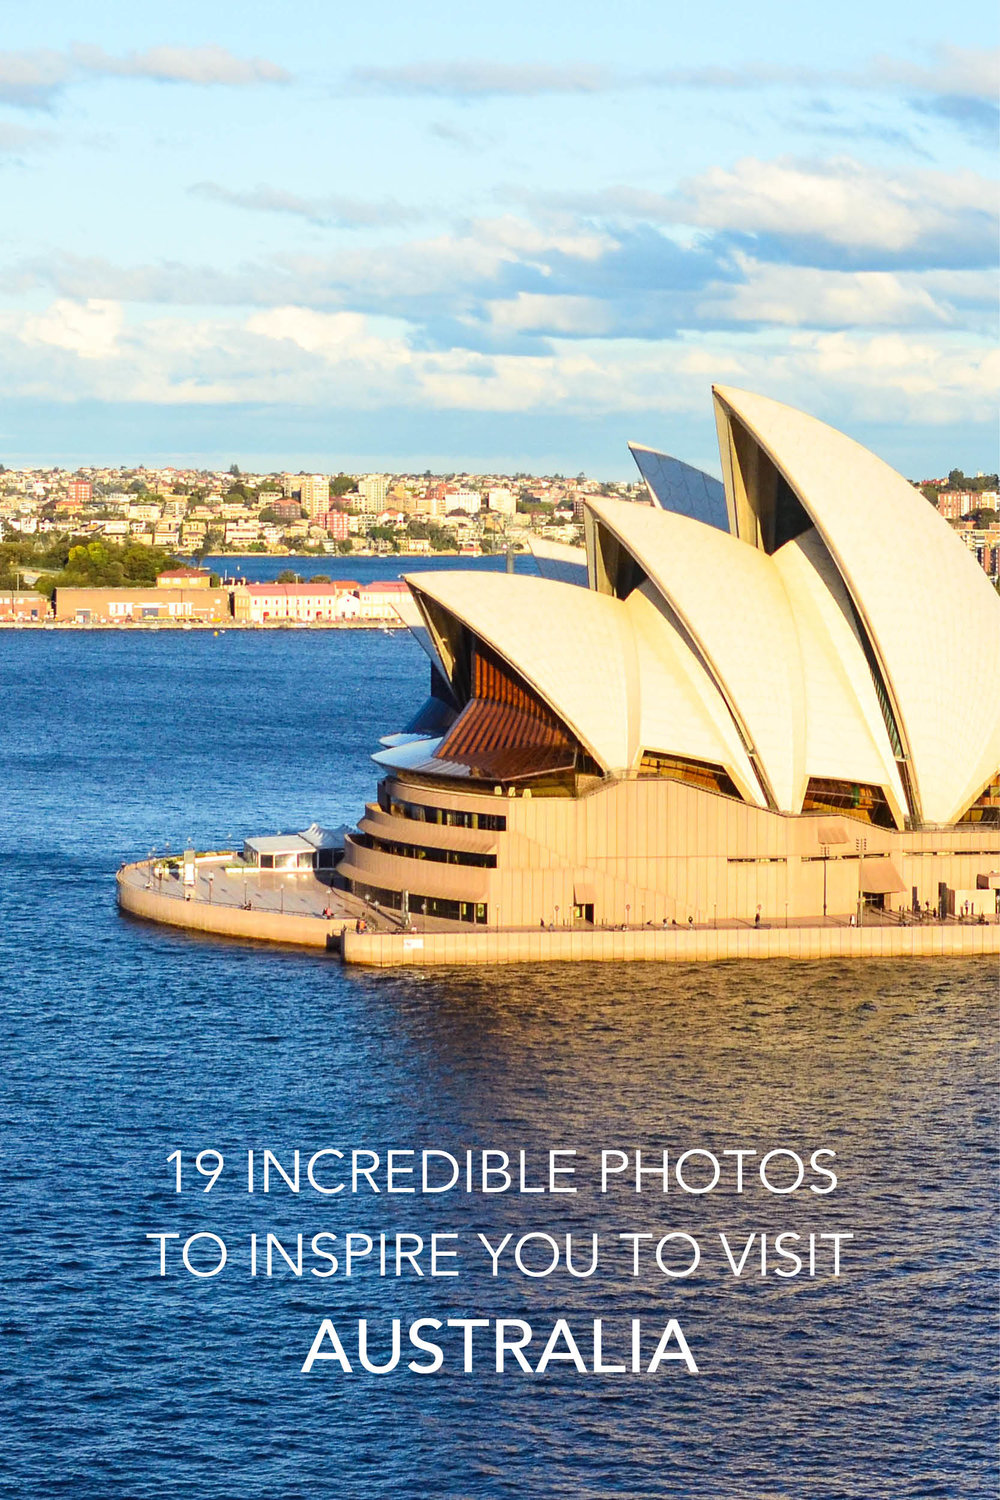 19 Photos to Inspire You To Visit Australia - Sydney Opera House.jpg